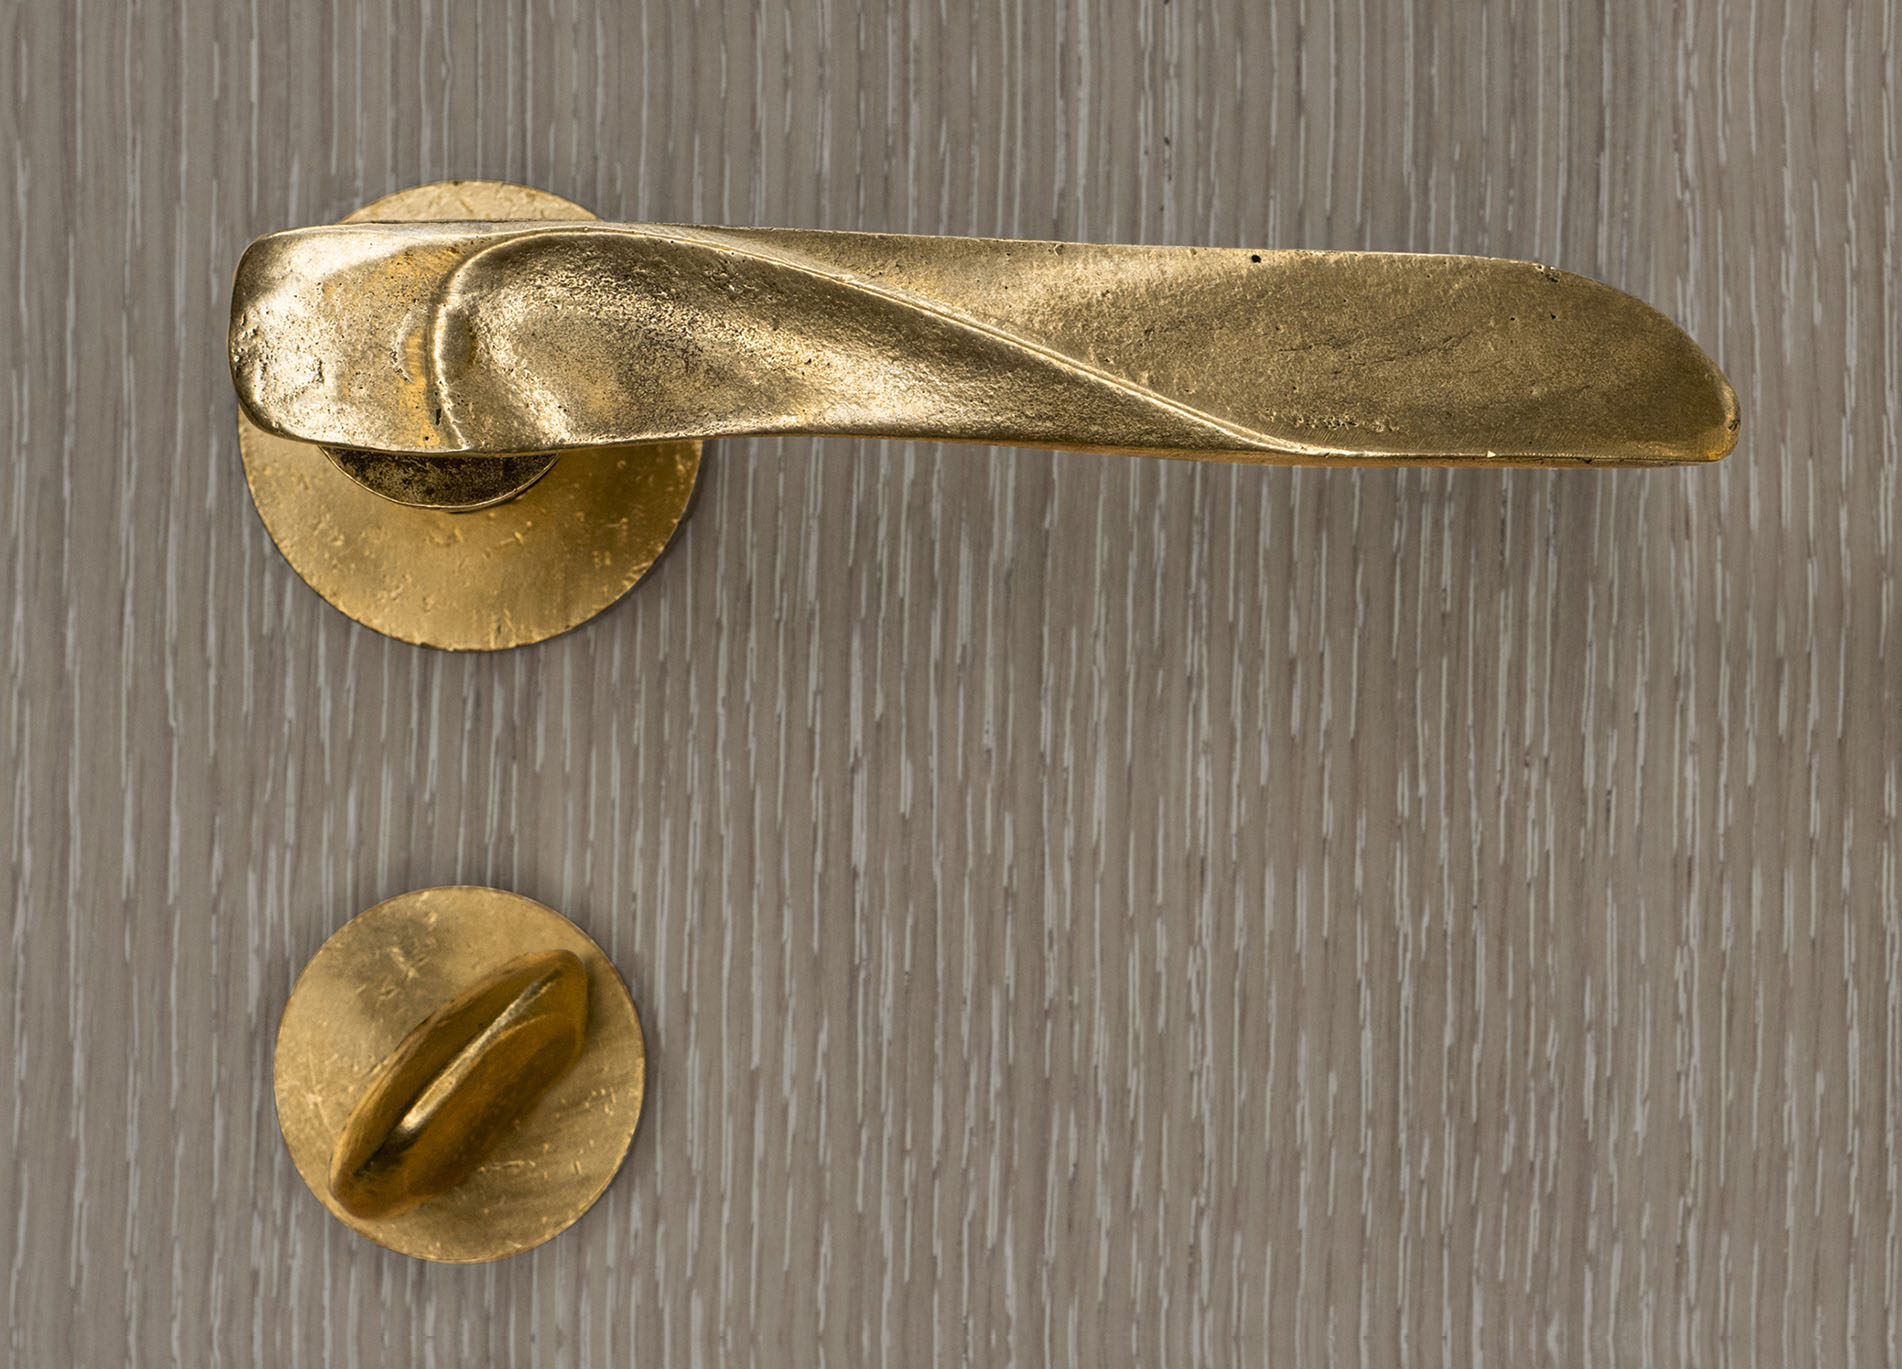 Versa lever: - Artist Mig Perkins designed this lever with an acute awareness of the grip and where the thumb falls. With a natural brass finish, the result is a sculpted and functional piece of artwork for the home.